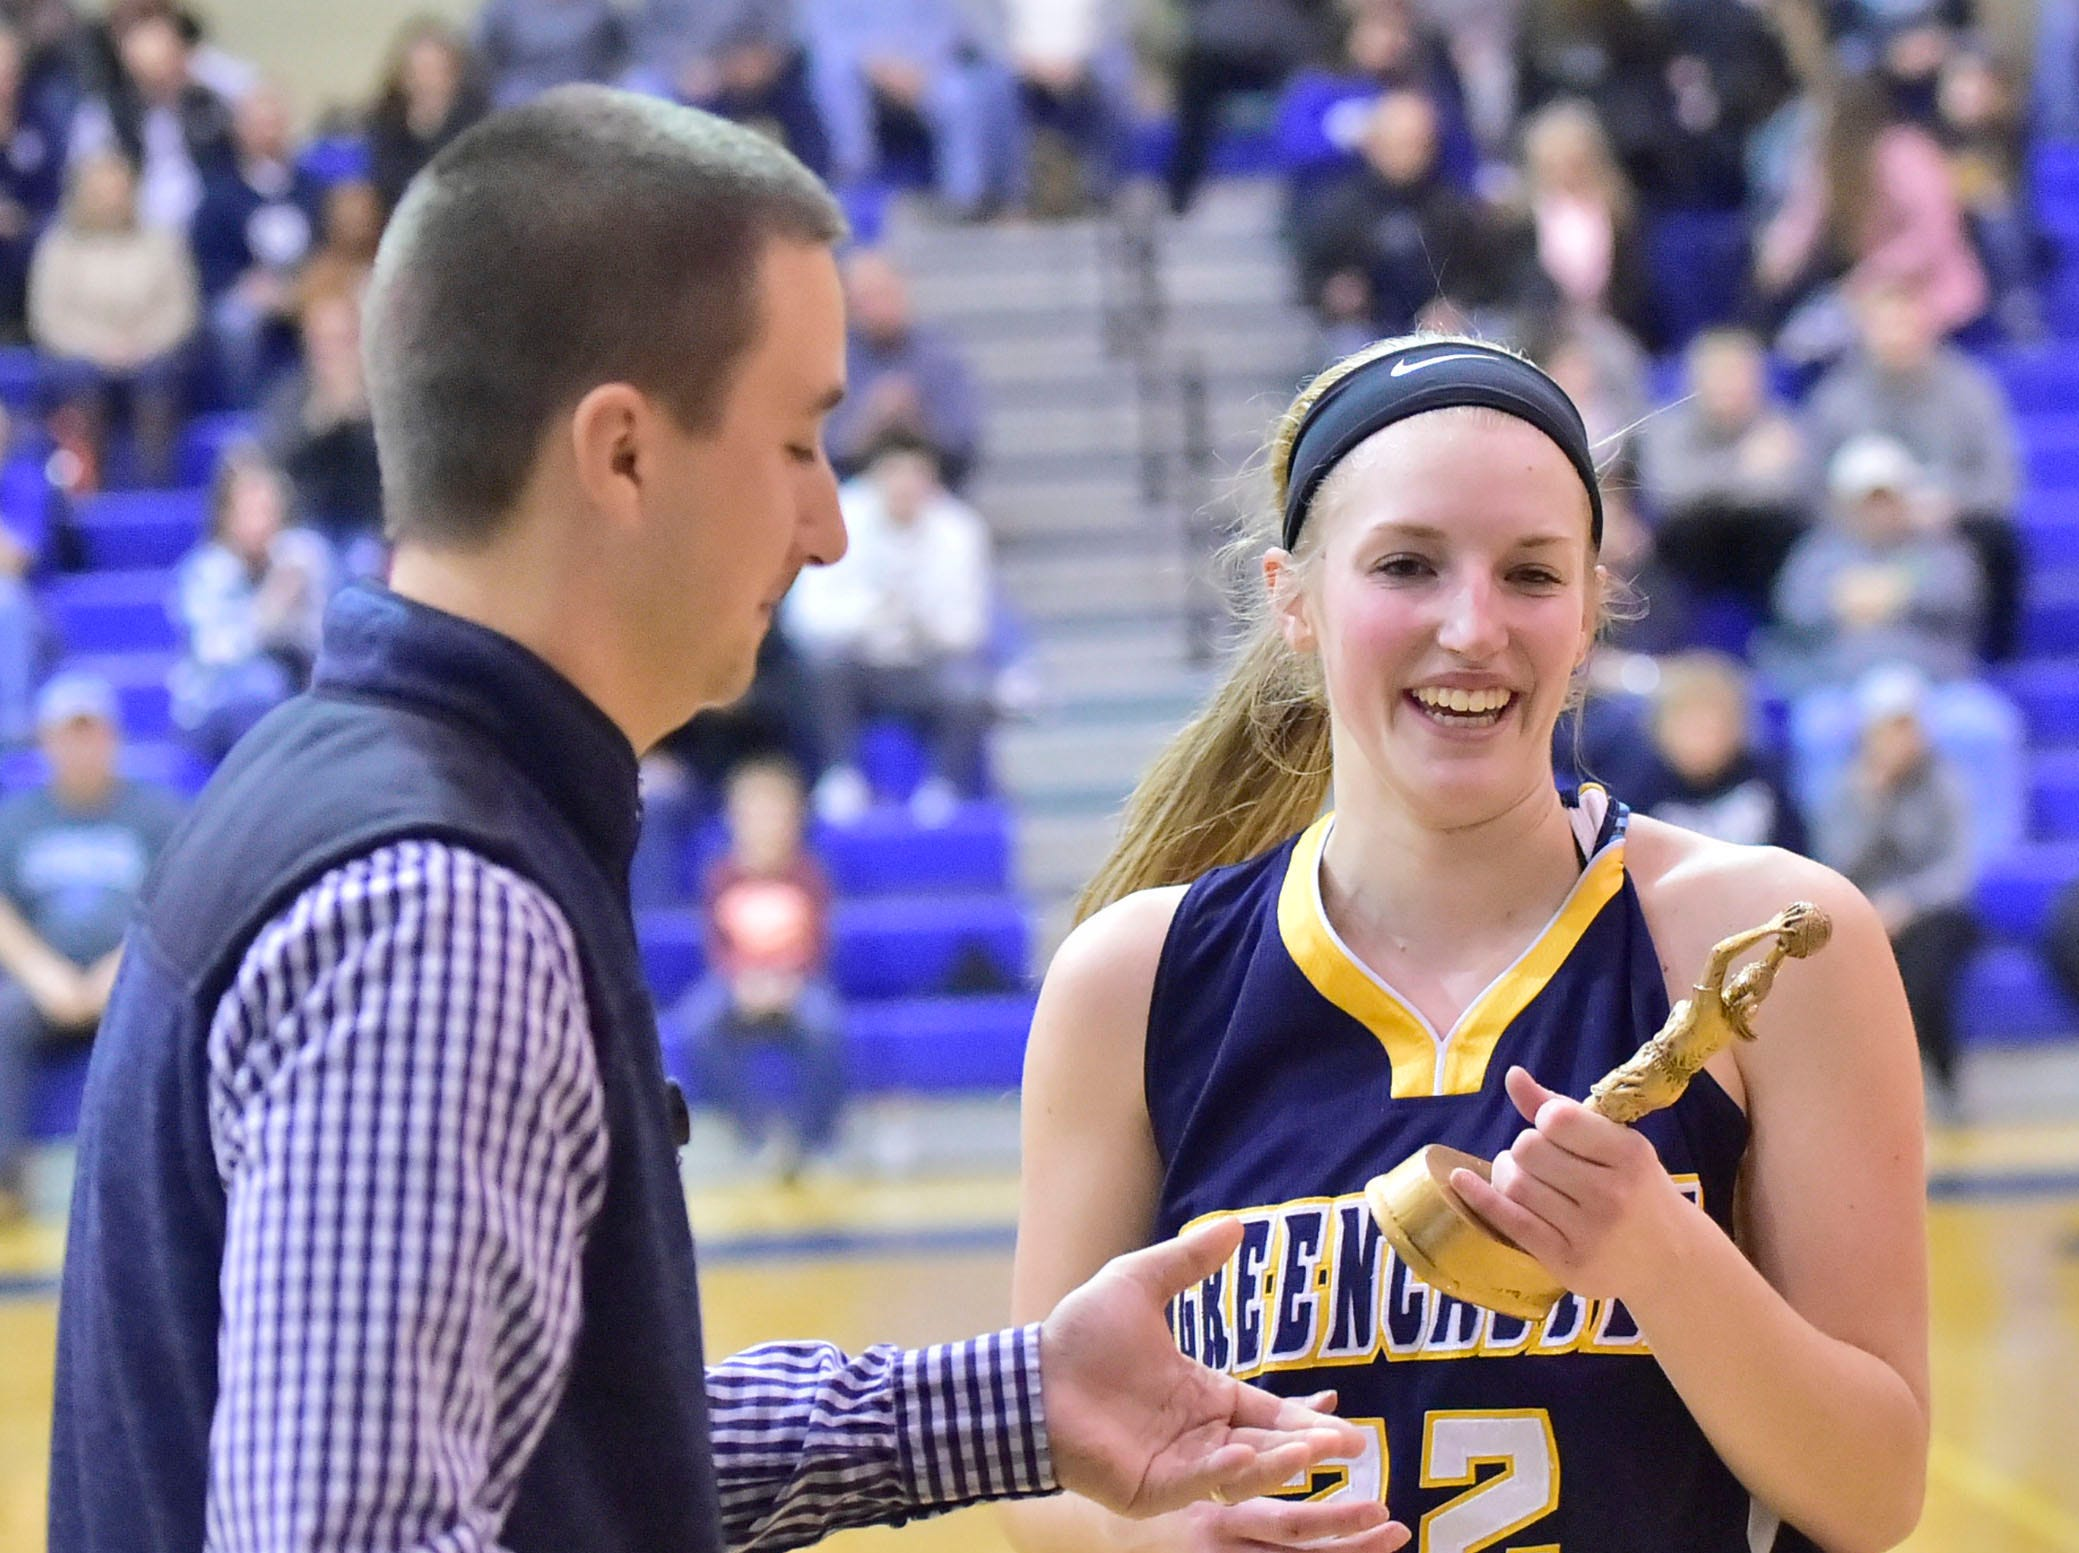 Greencastle's Lydia Crist is the tournament MVP. Greencastle defeated Chambersburg 26-22 during the finals at Franklin County Tip-Off Tournament, Saturday, Dec. 8, 2018.